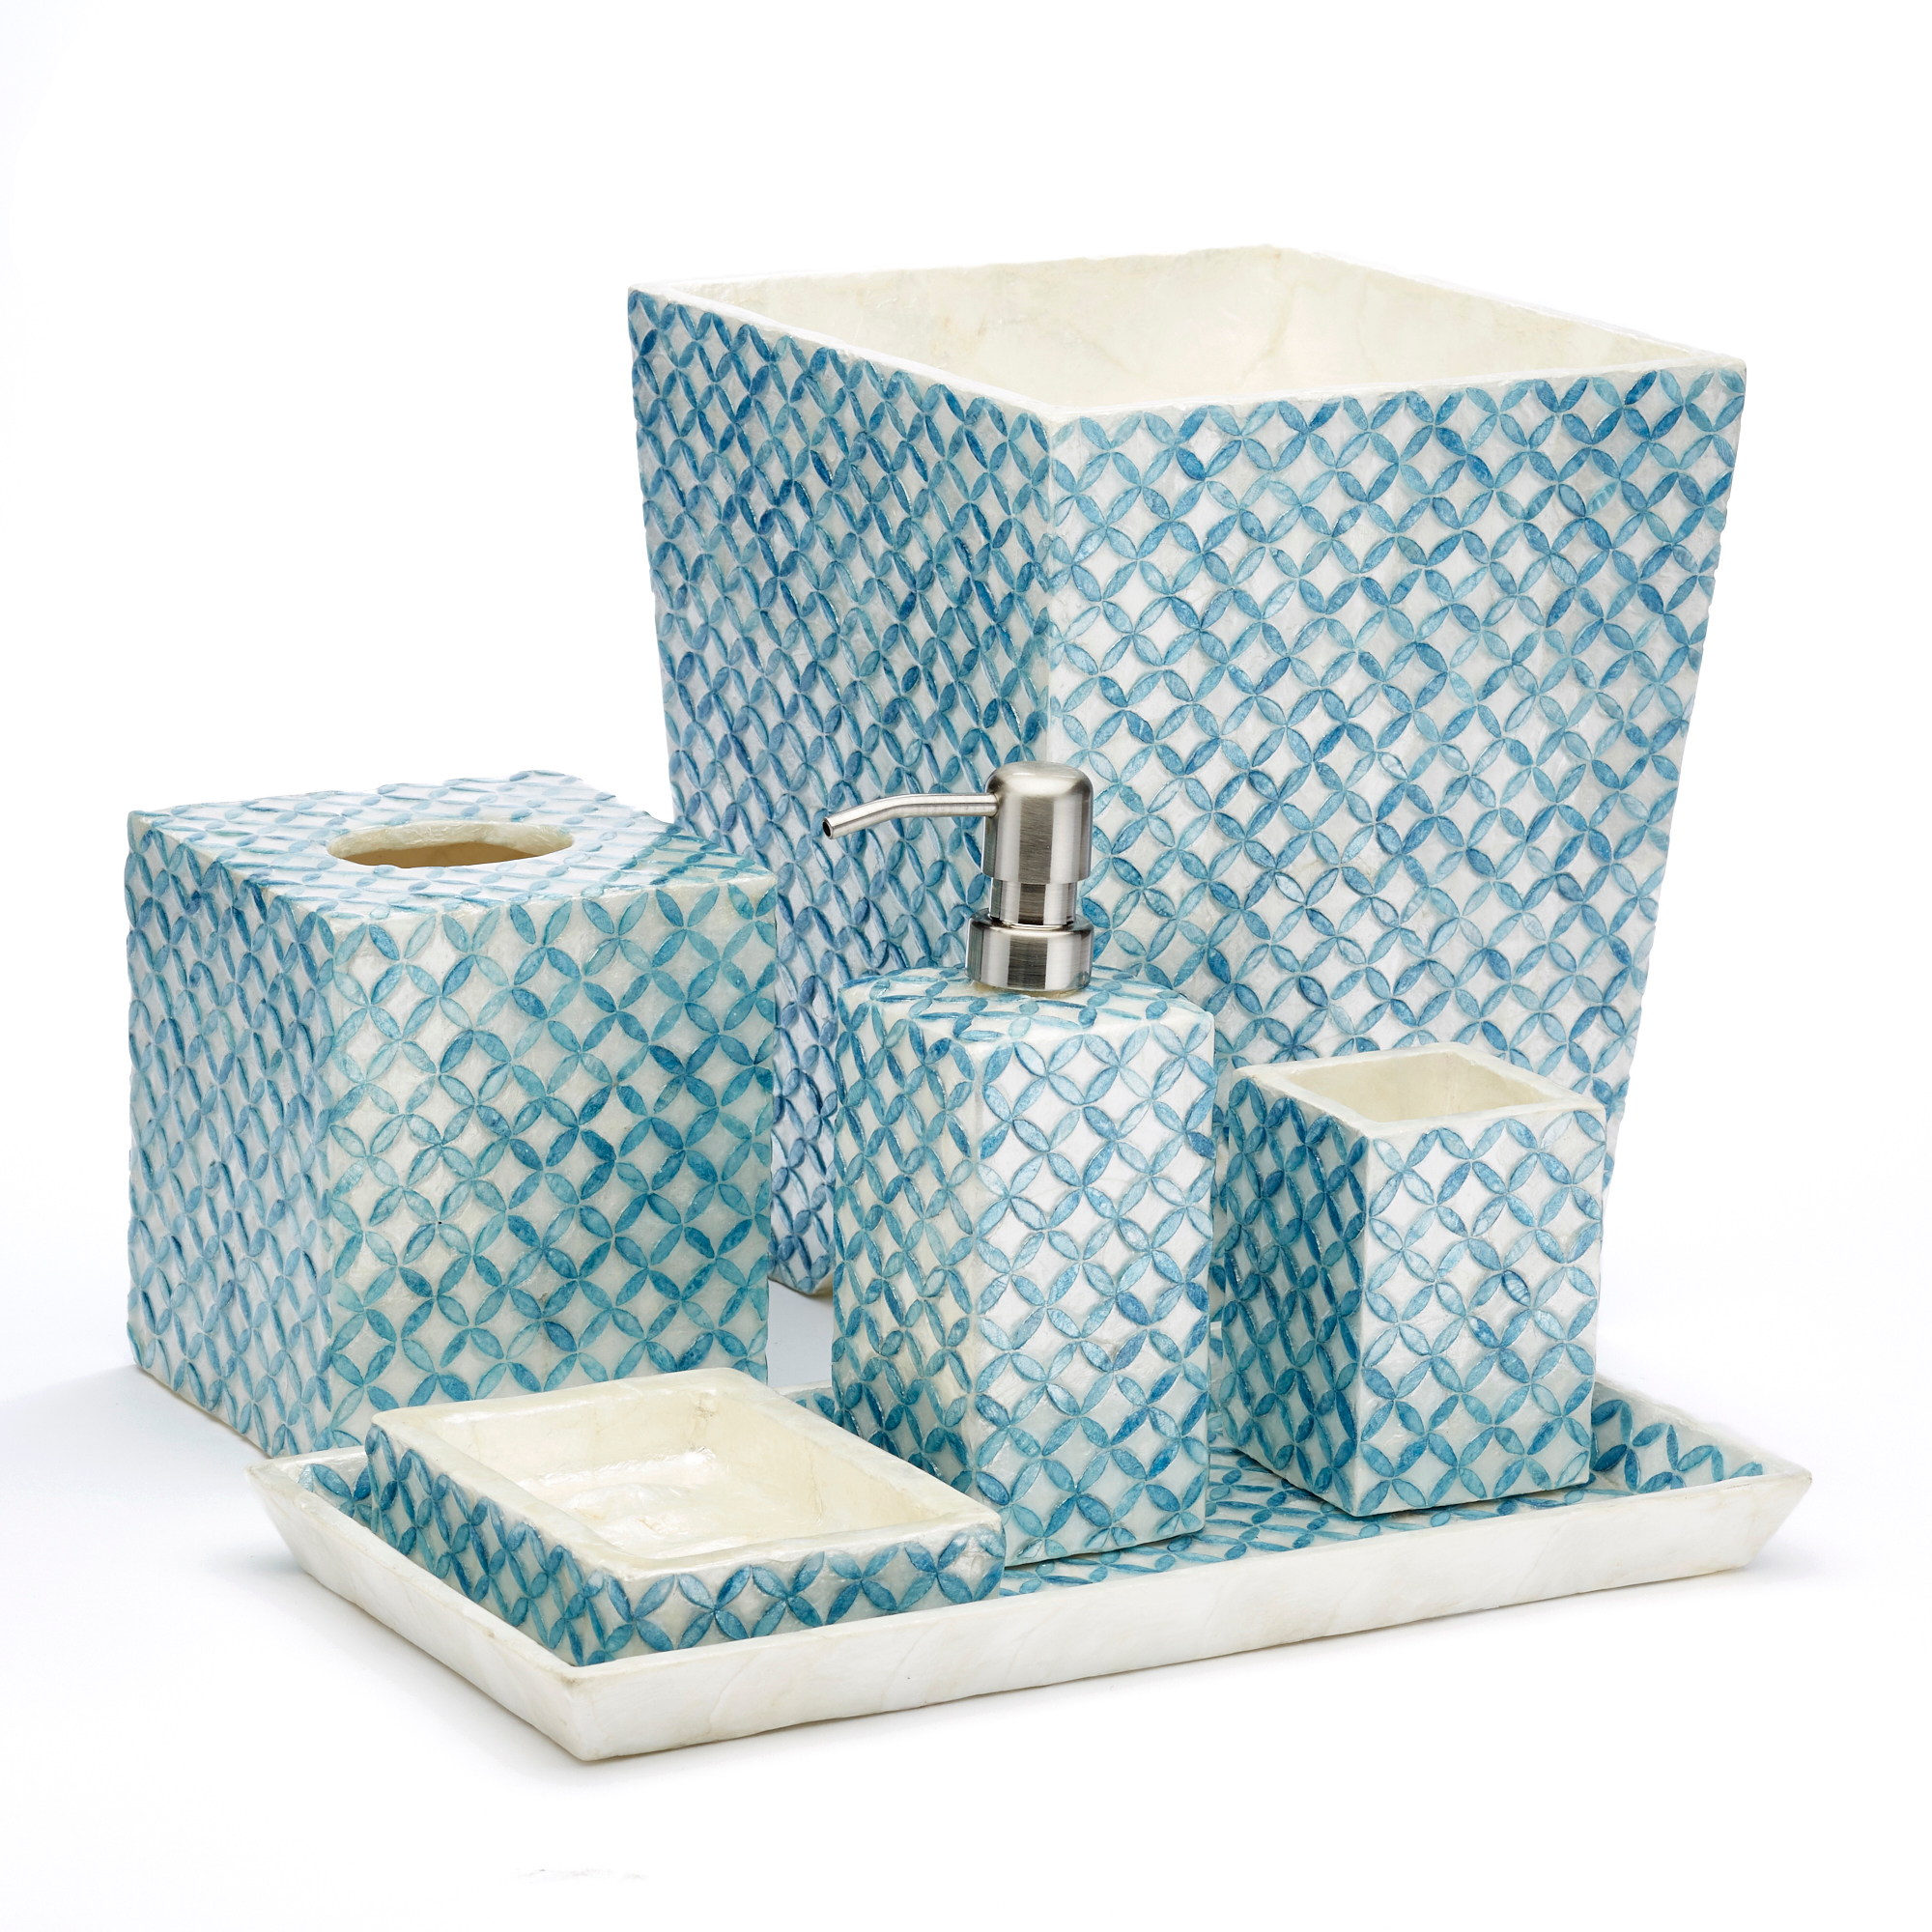 Lattice Capiz Shell Bathroom Accents